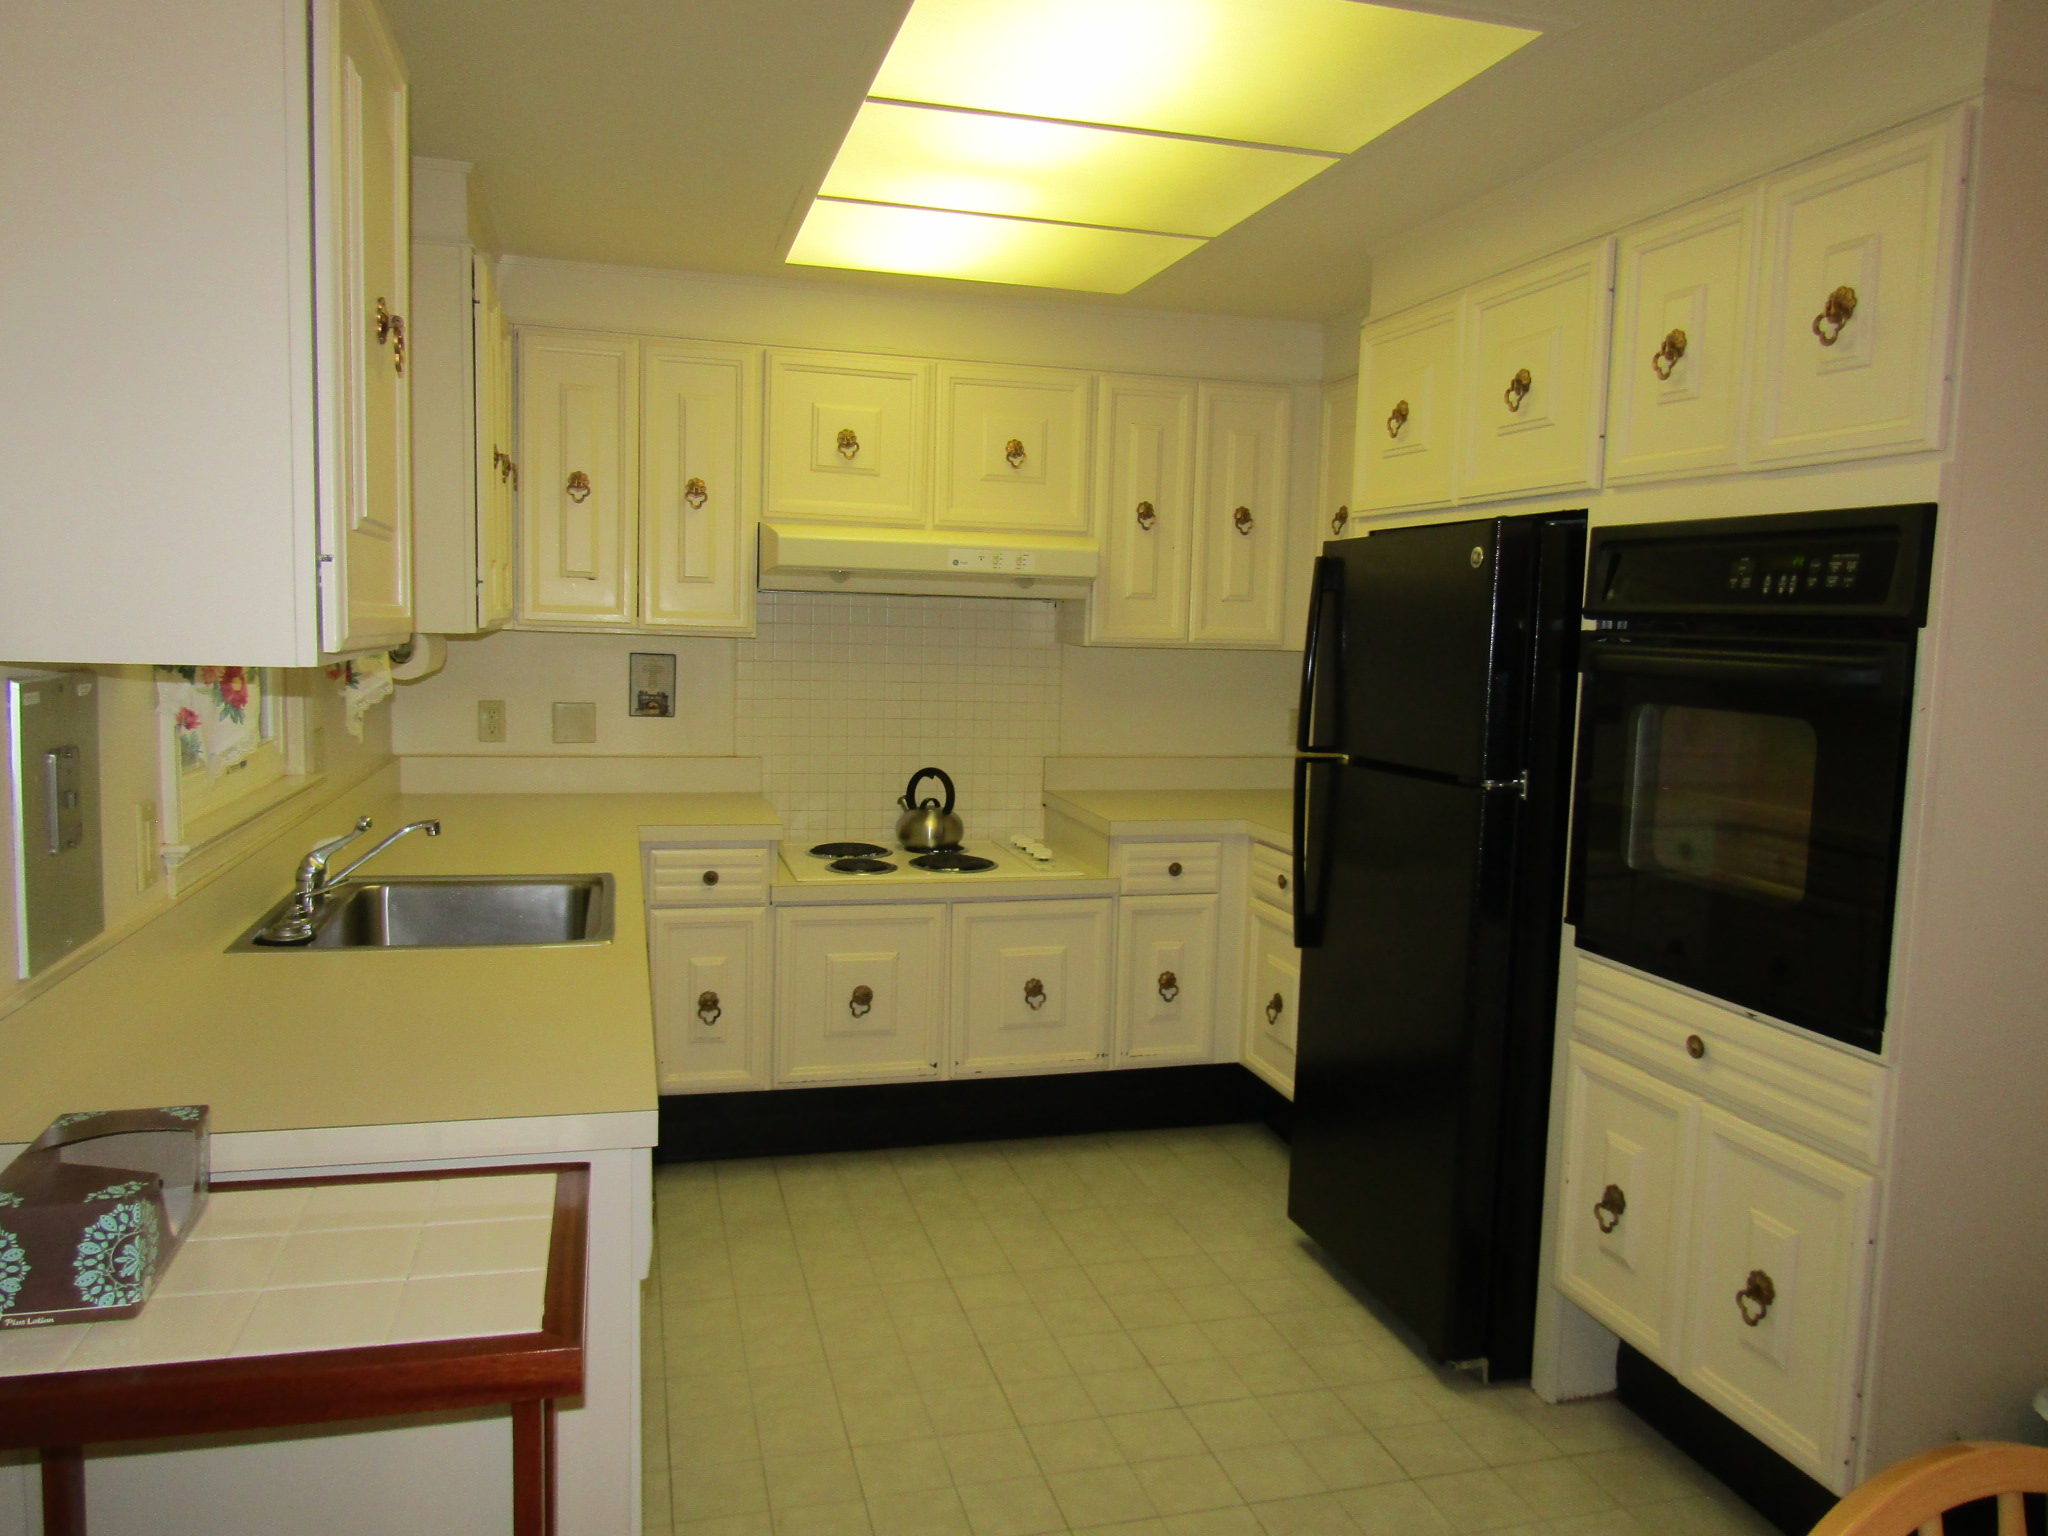 49-C Kitchen 1